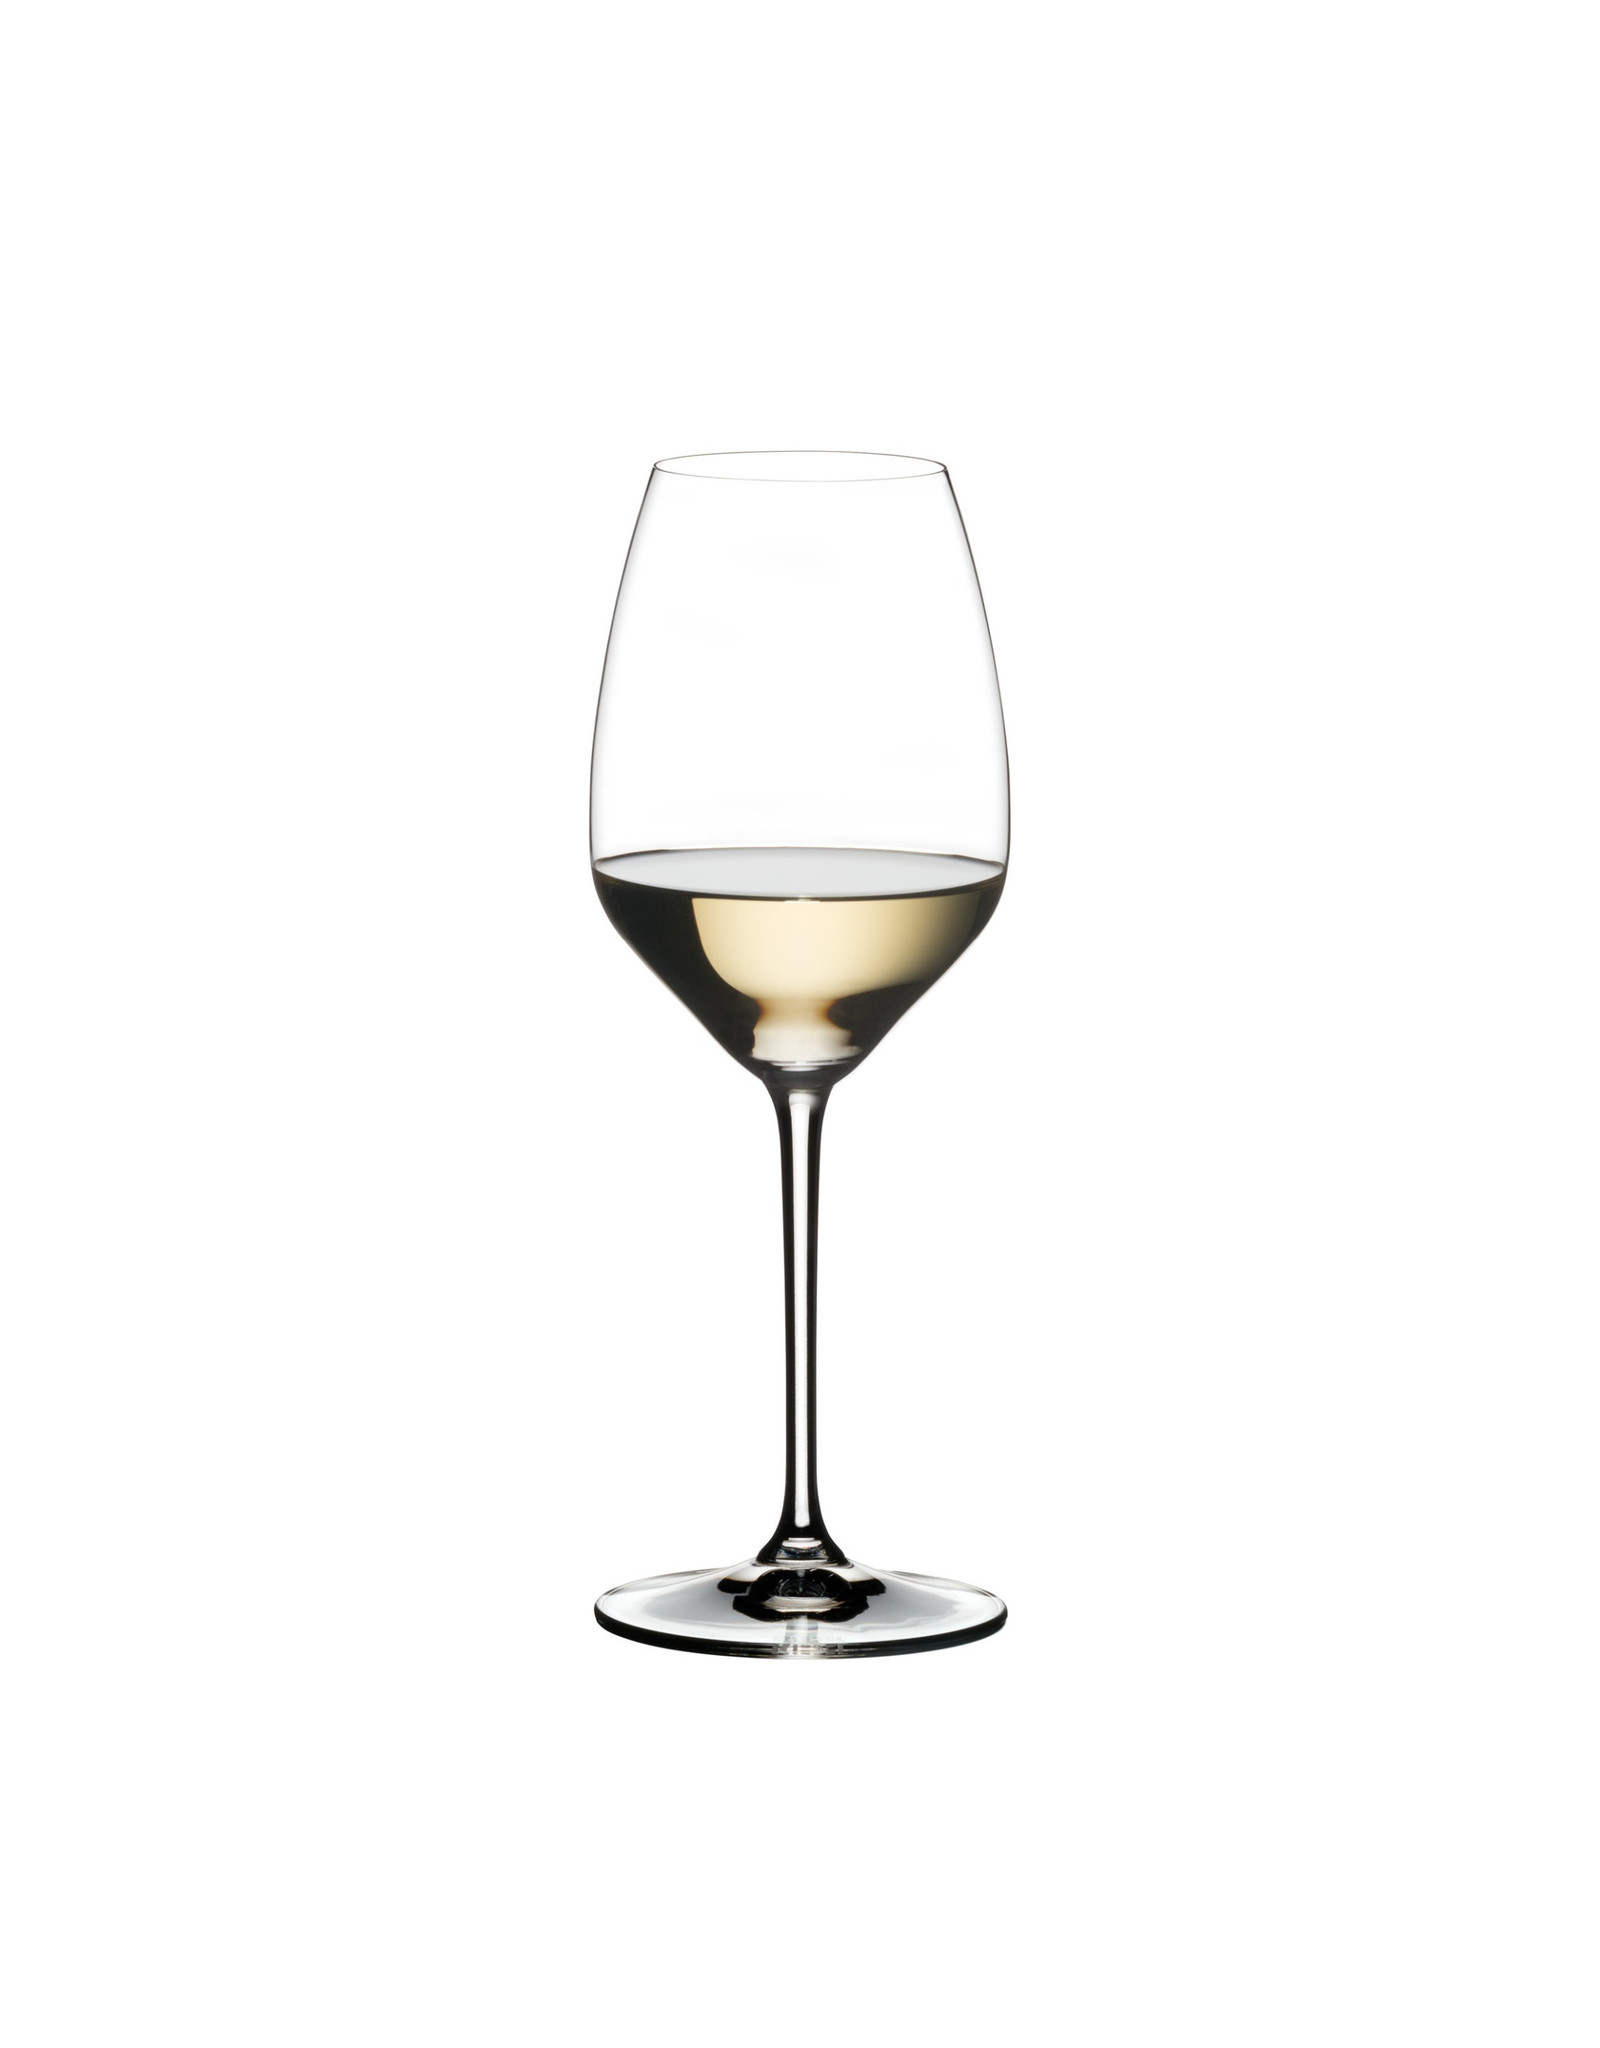 Riedel Riedel Extreme Riesling / Sauvignon Blanc Glass